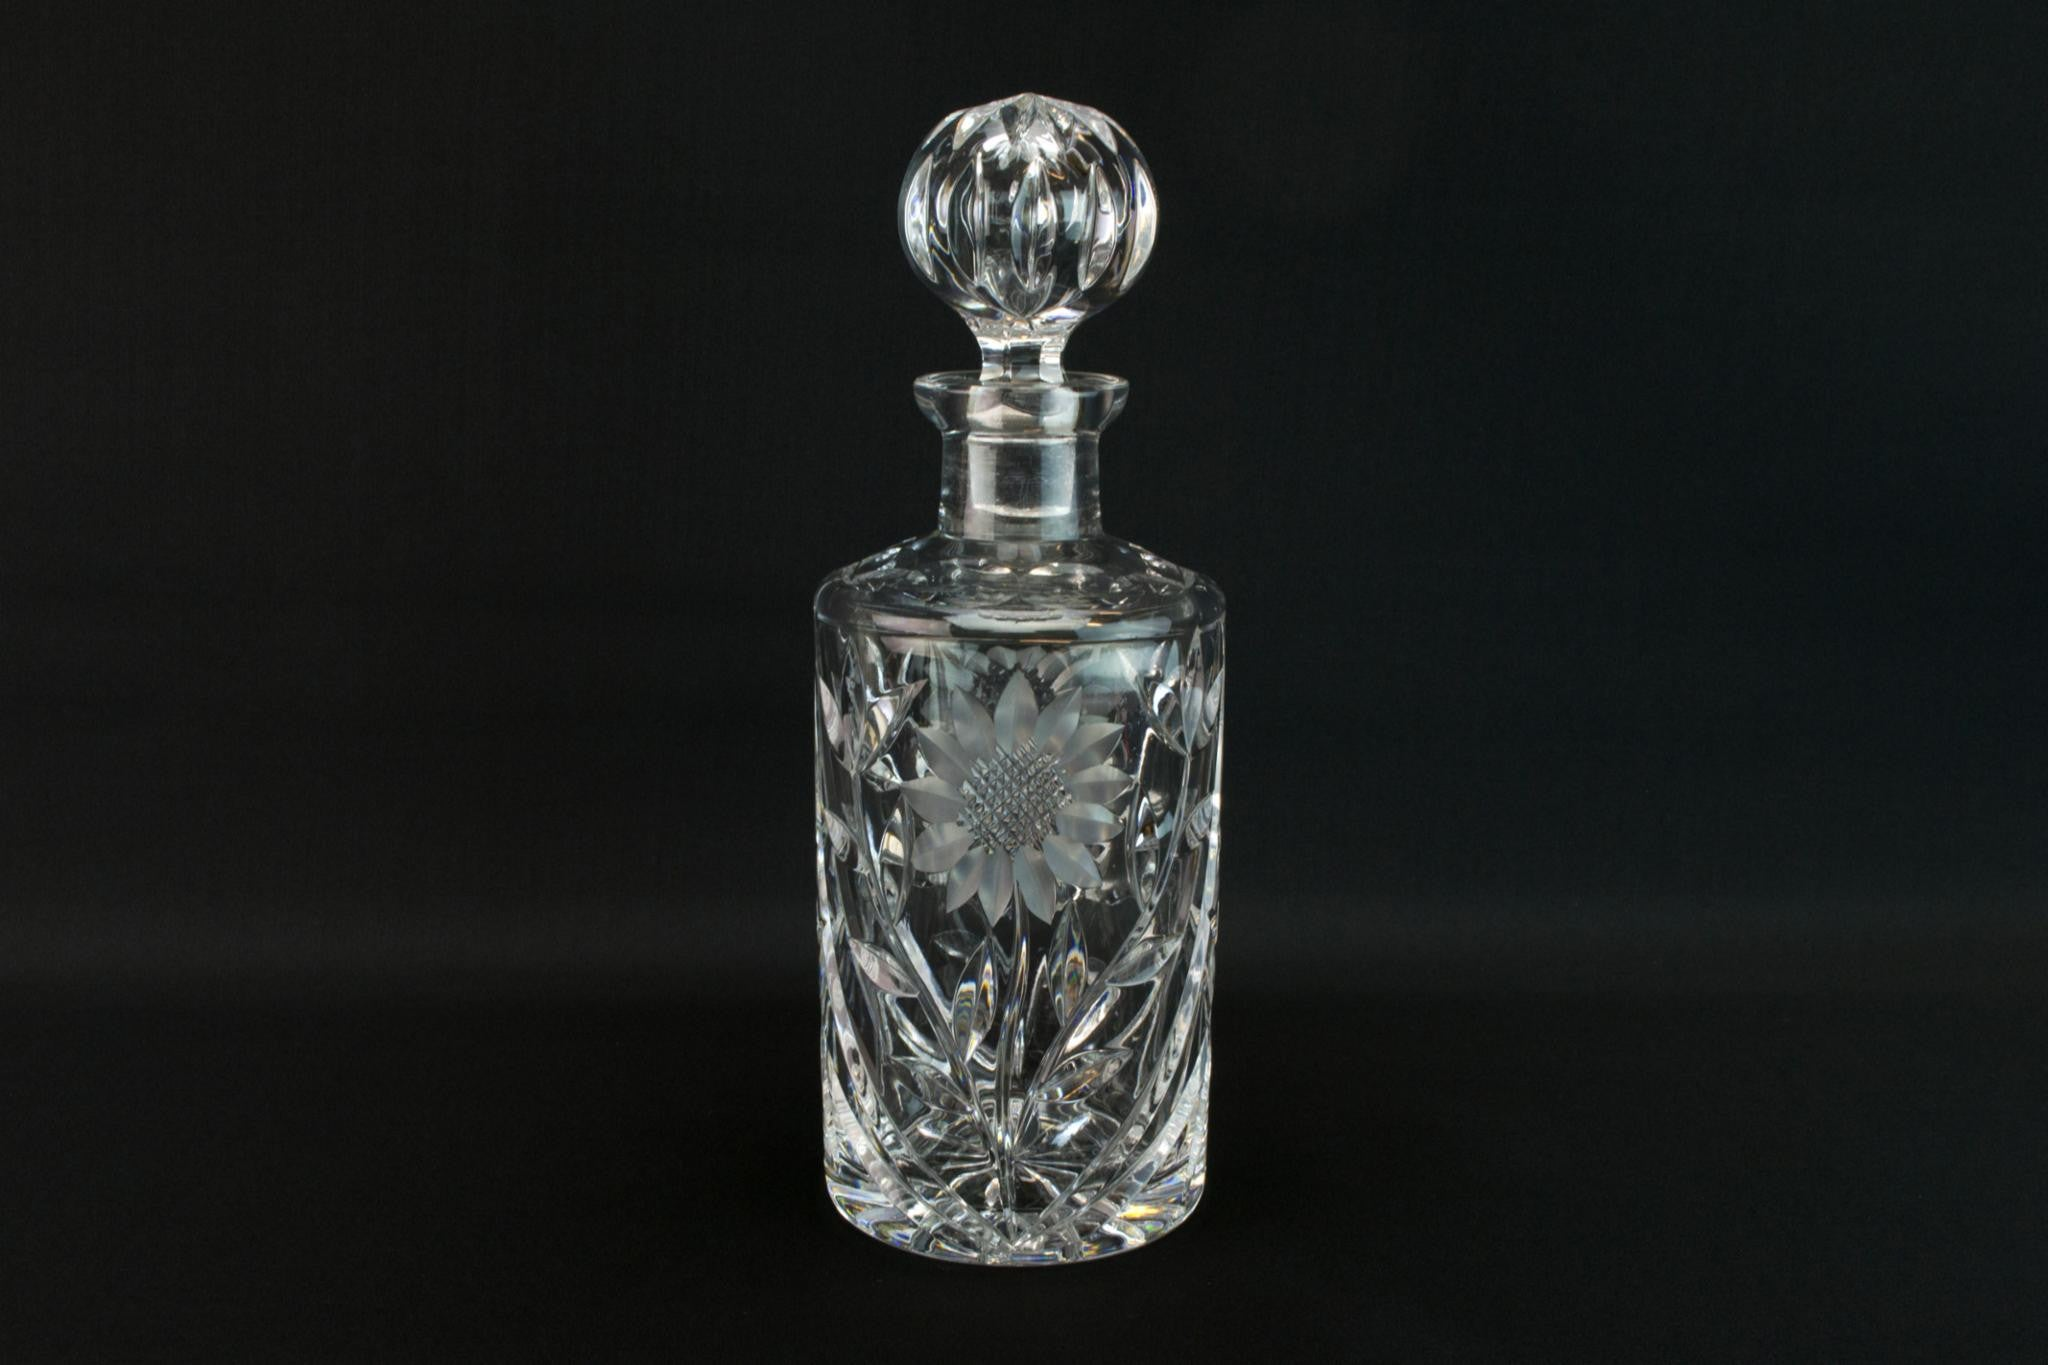 Cut glass whisky round decanter